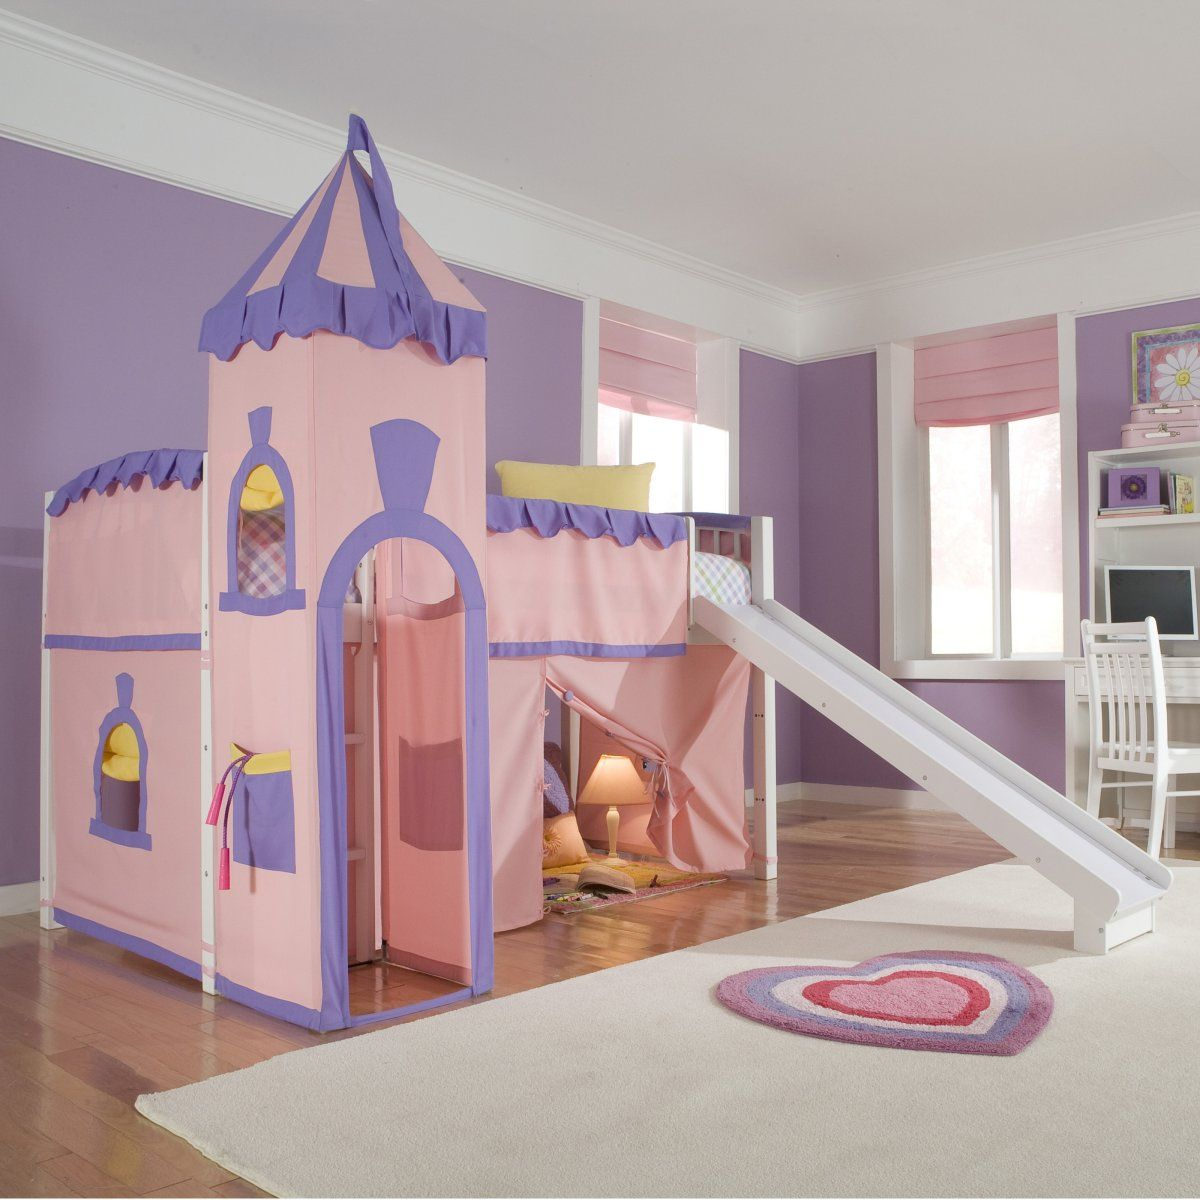 Diy Toddler Loft Bed Schoolhouse Princess Loft Bed Bed Is Sturdy But The Tower And